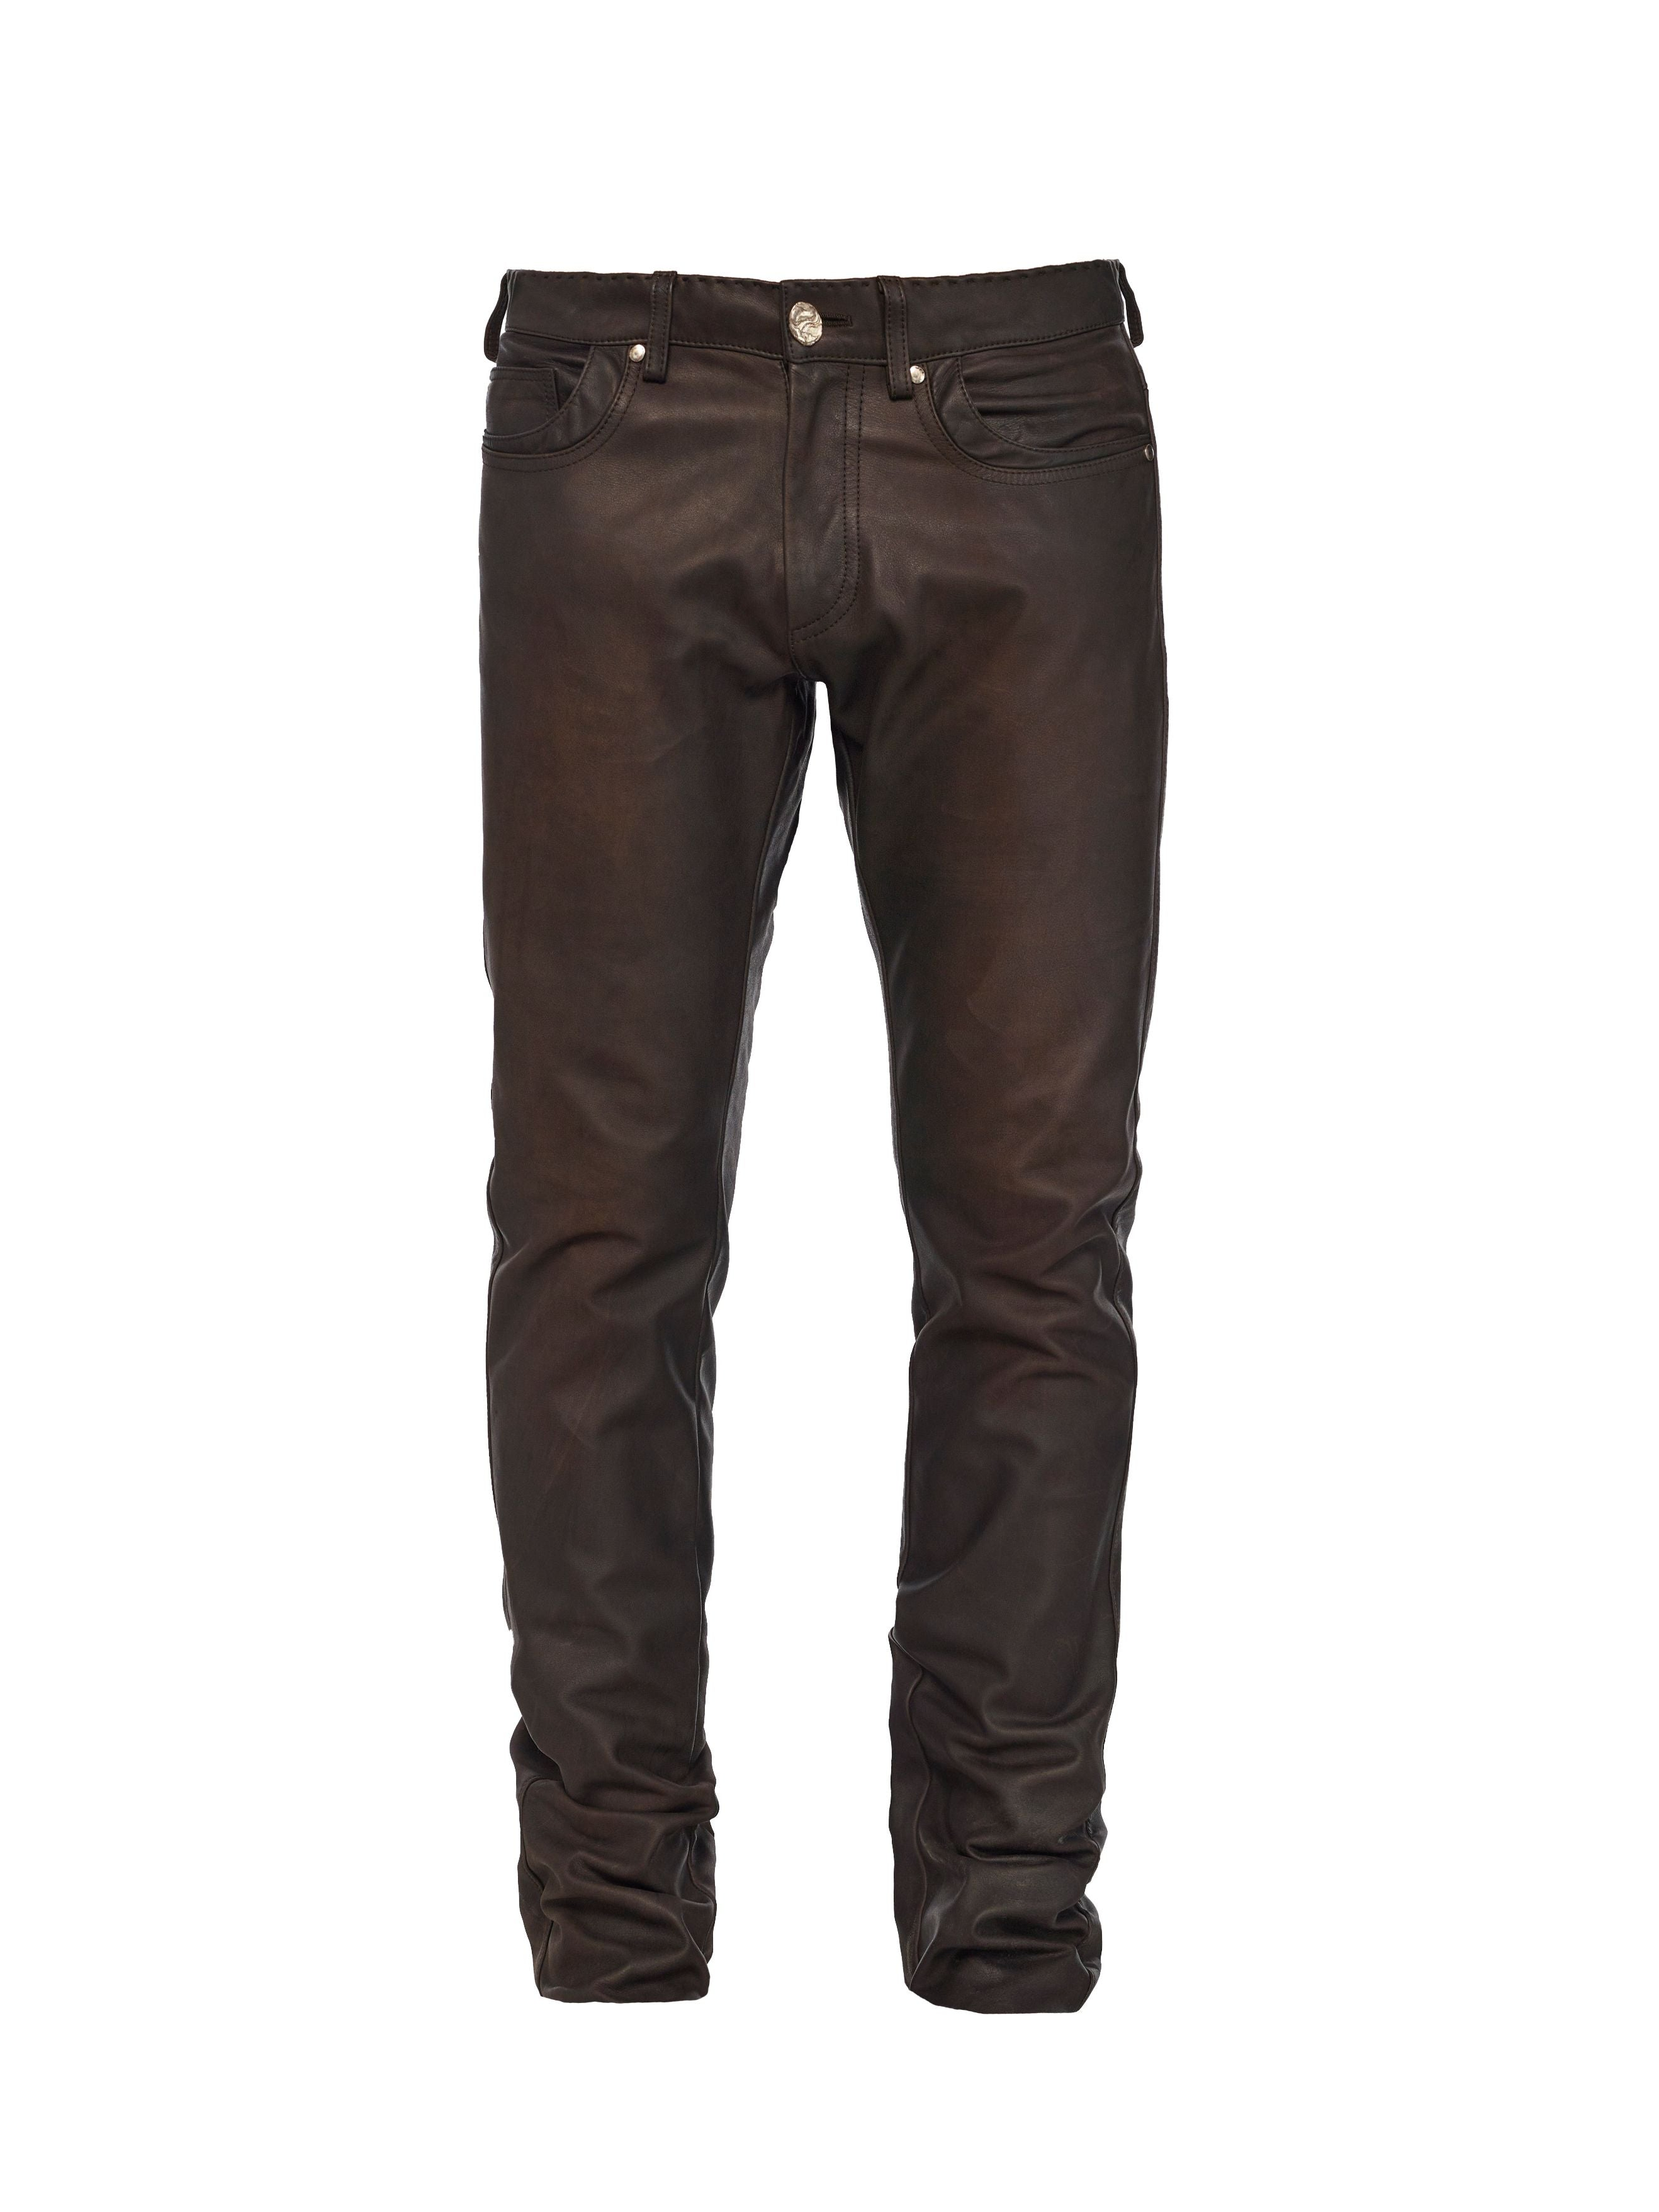 Vegetable-dyed Italian calf 5-pocket jean with pick stitching and no cut line at the knee